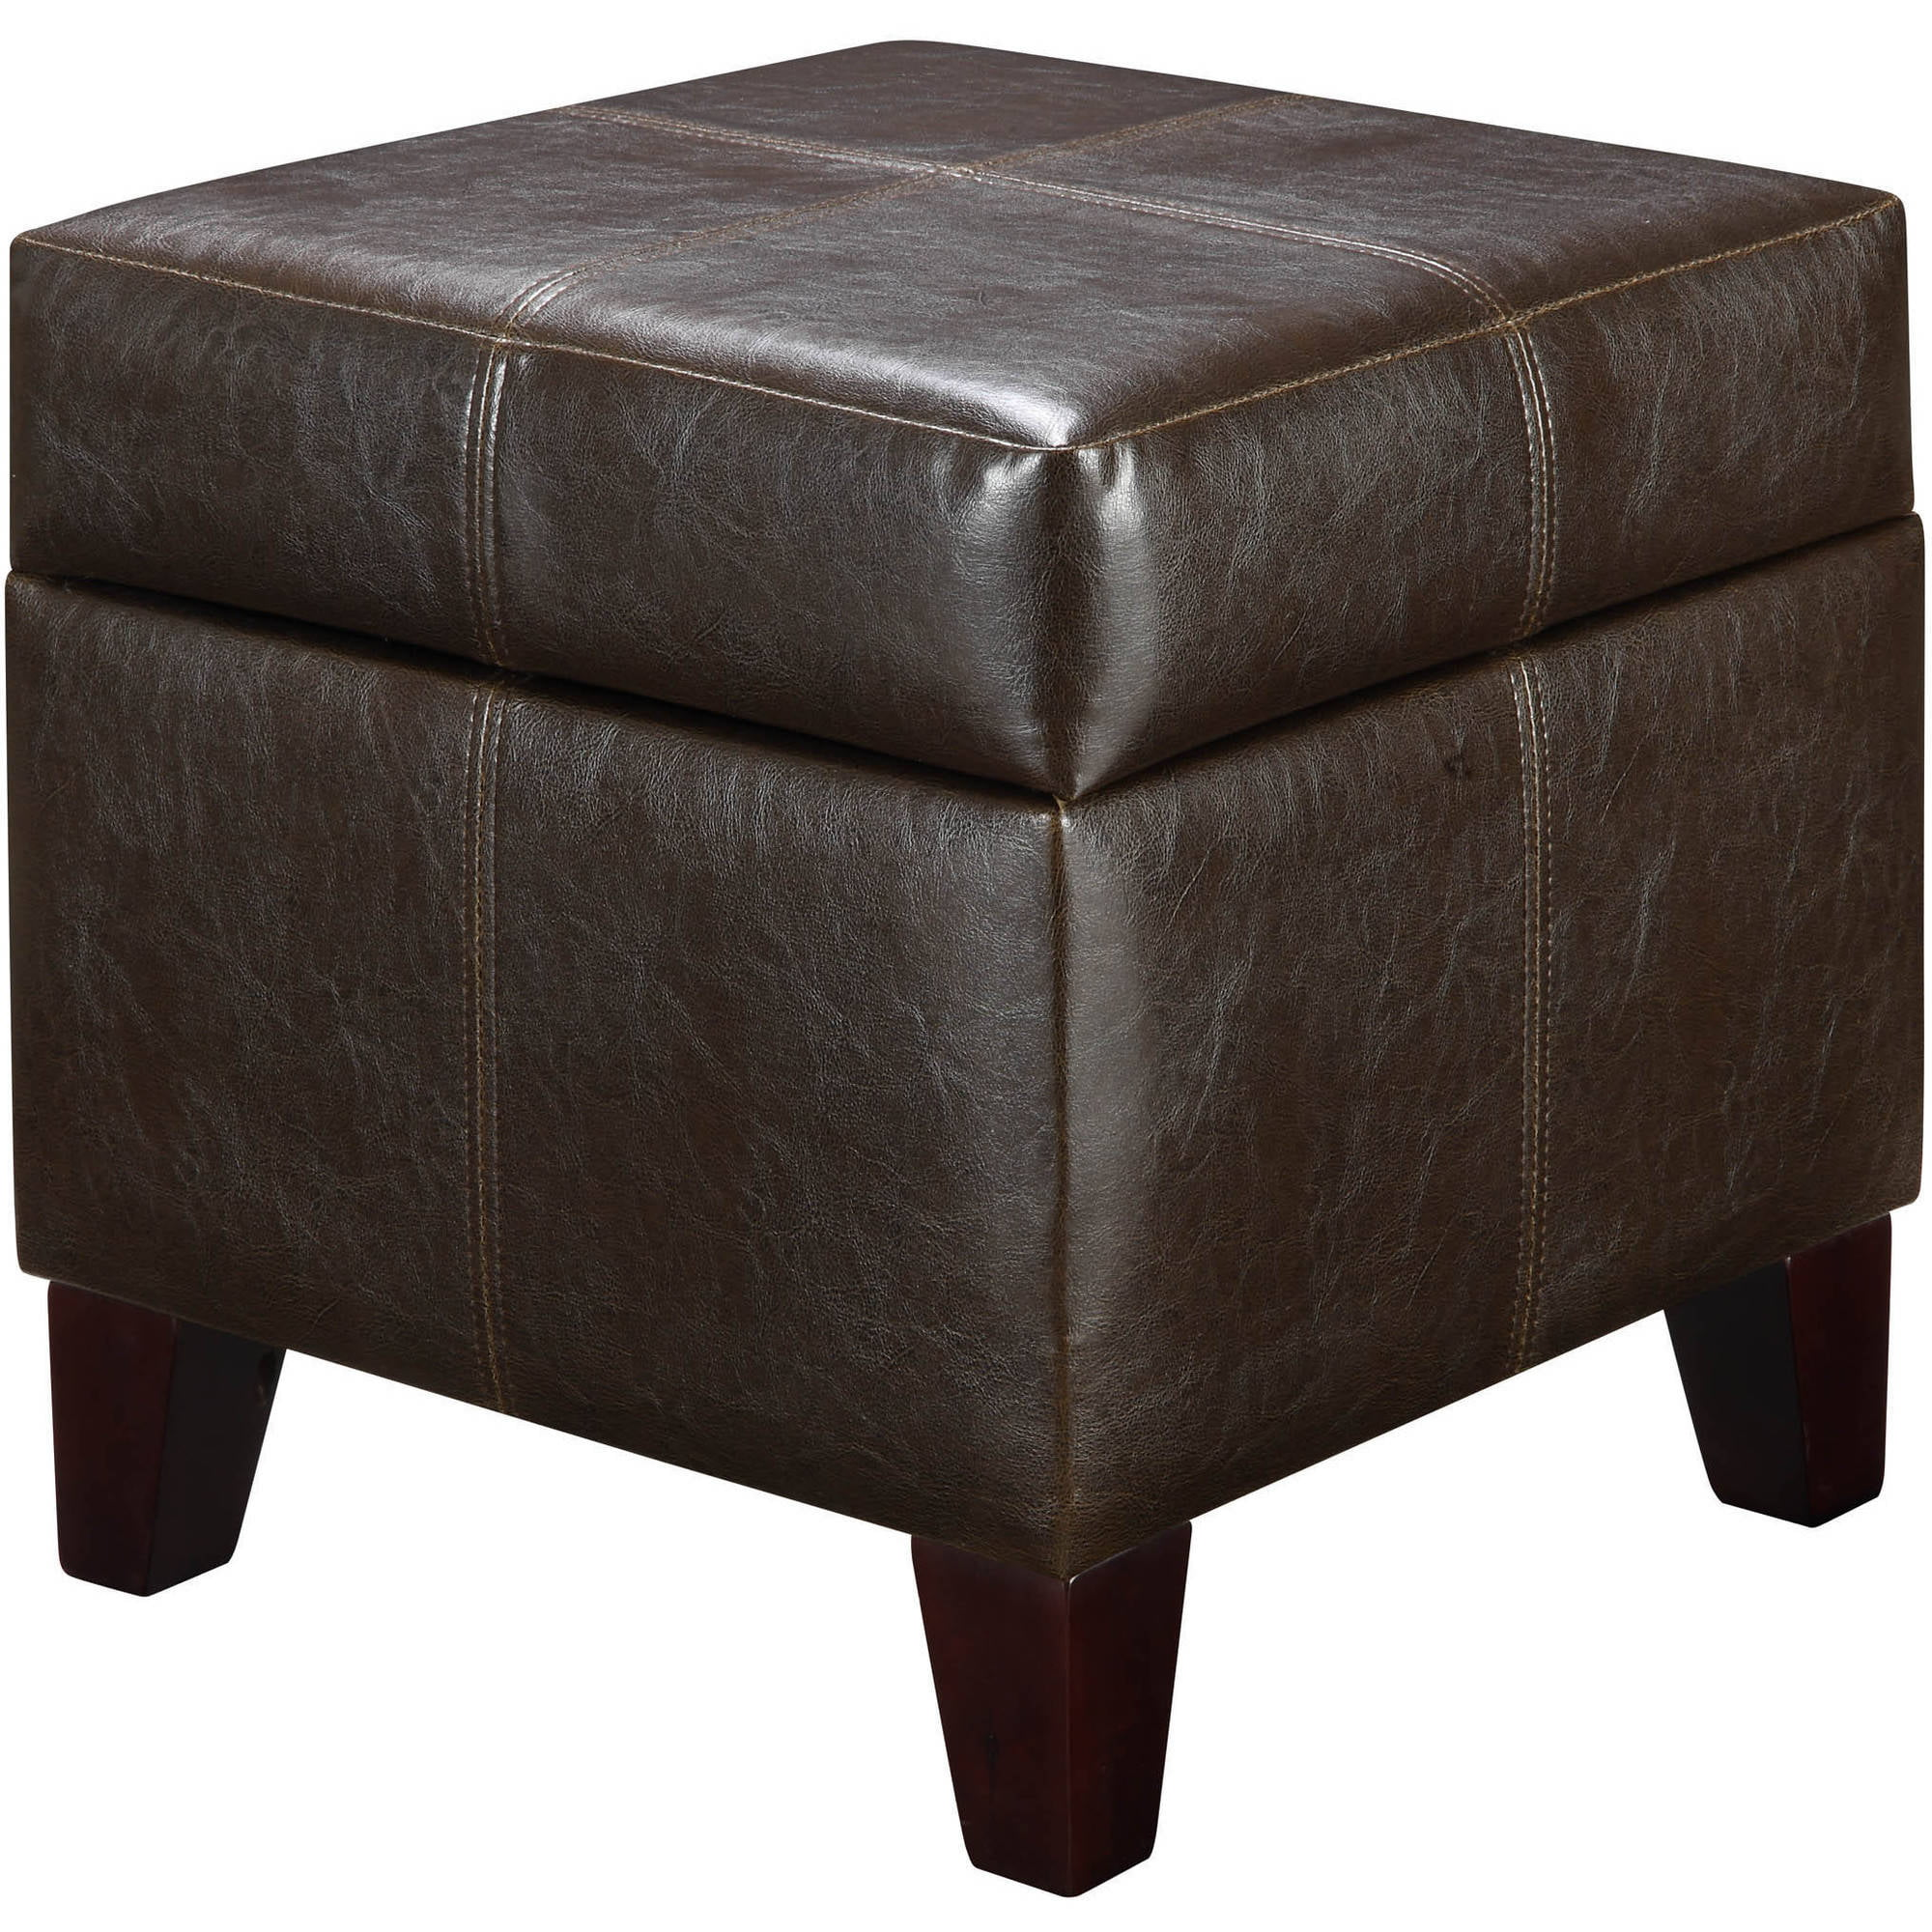 Beau Dorel Living Small Storage Ottoman, Multiple Colors   Walmart.com